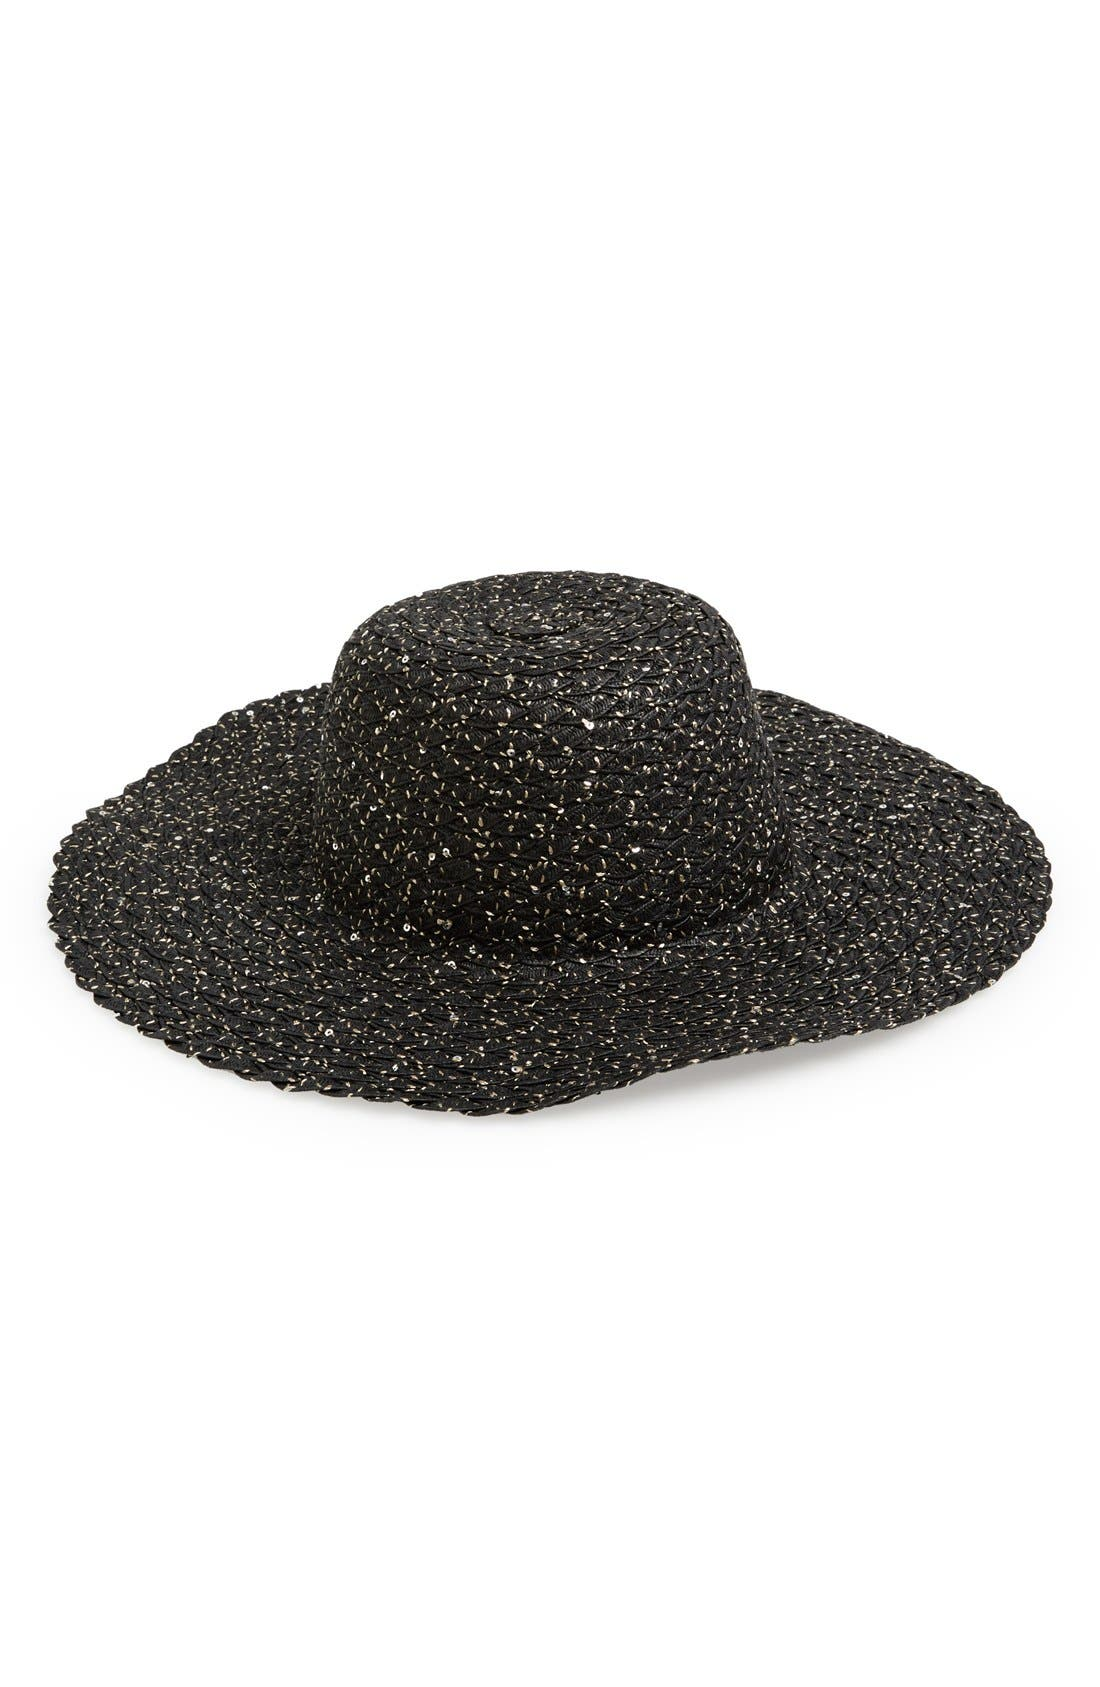 Alternate Image 1 Selected - August Hat 'Shiny Discovery' Floppy Hat